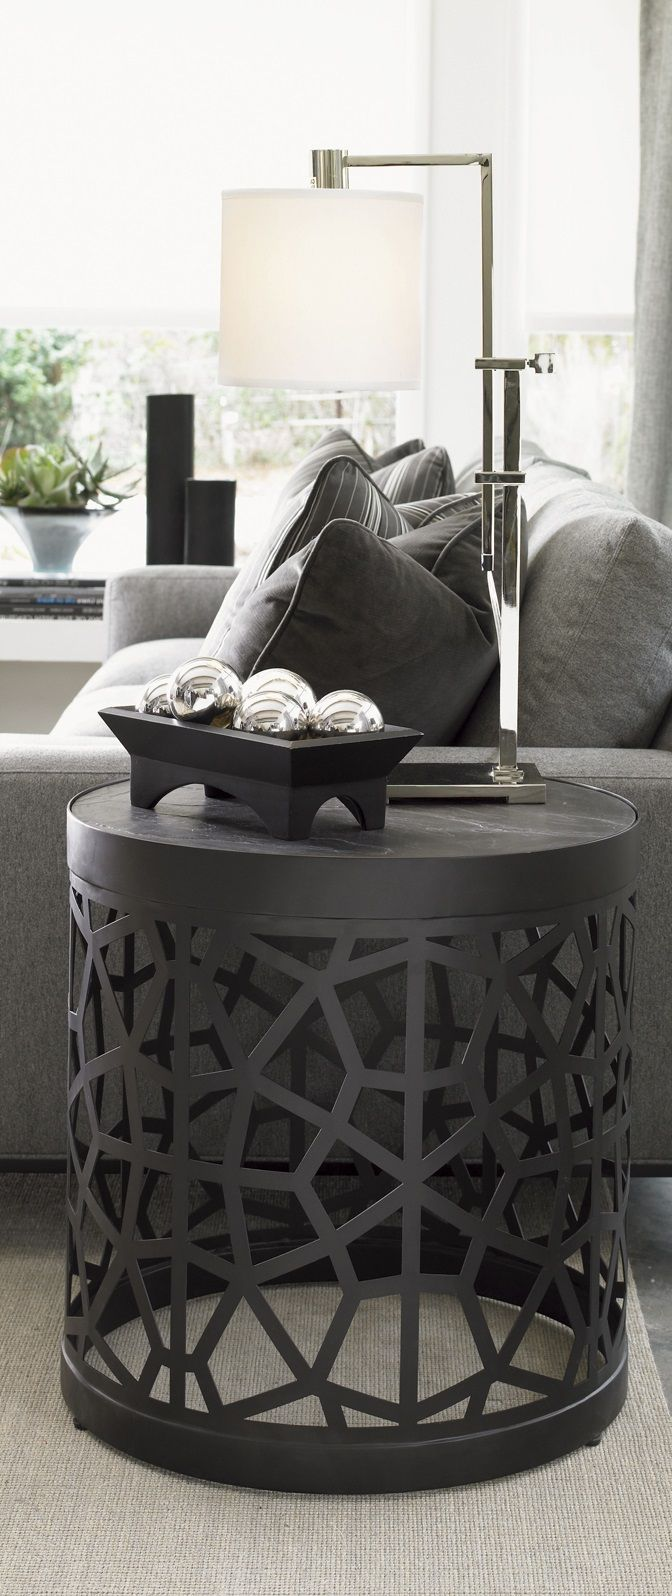 pin natalie monkelbaan modern interior design living room accent table ideas side tables end interiordesign casegoodsideas chest round washable tablecloth night stands calgary